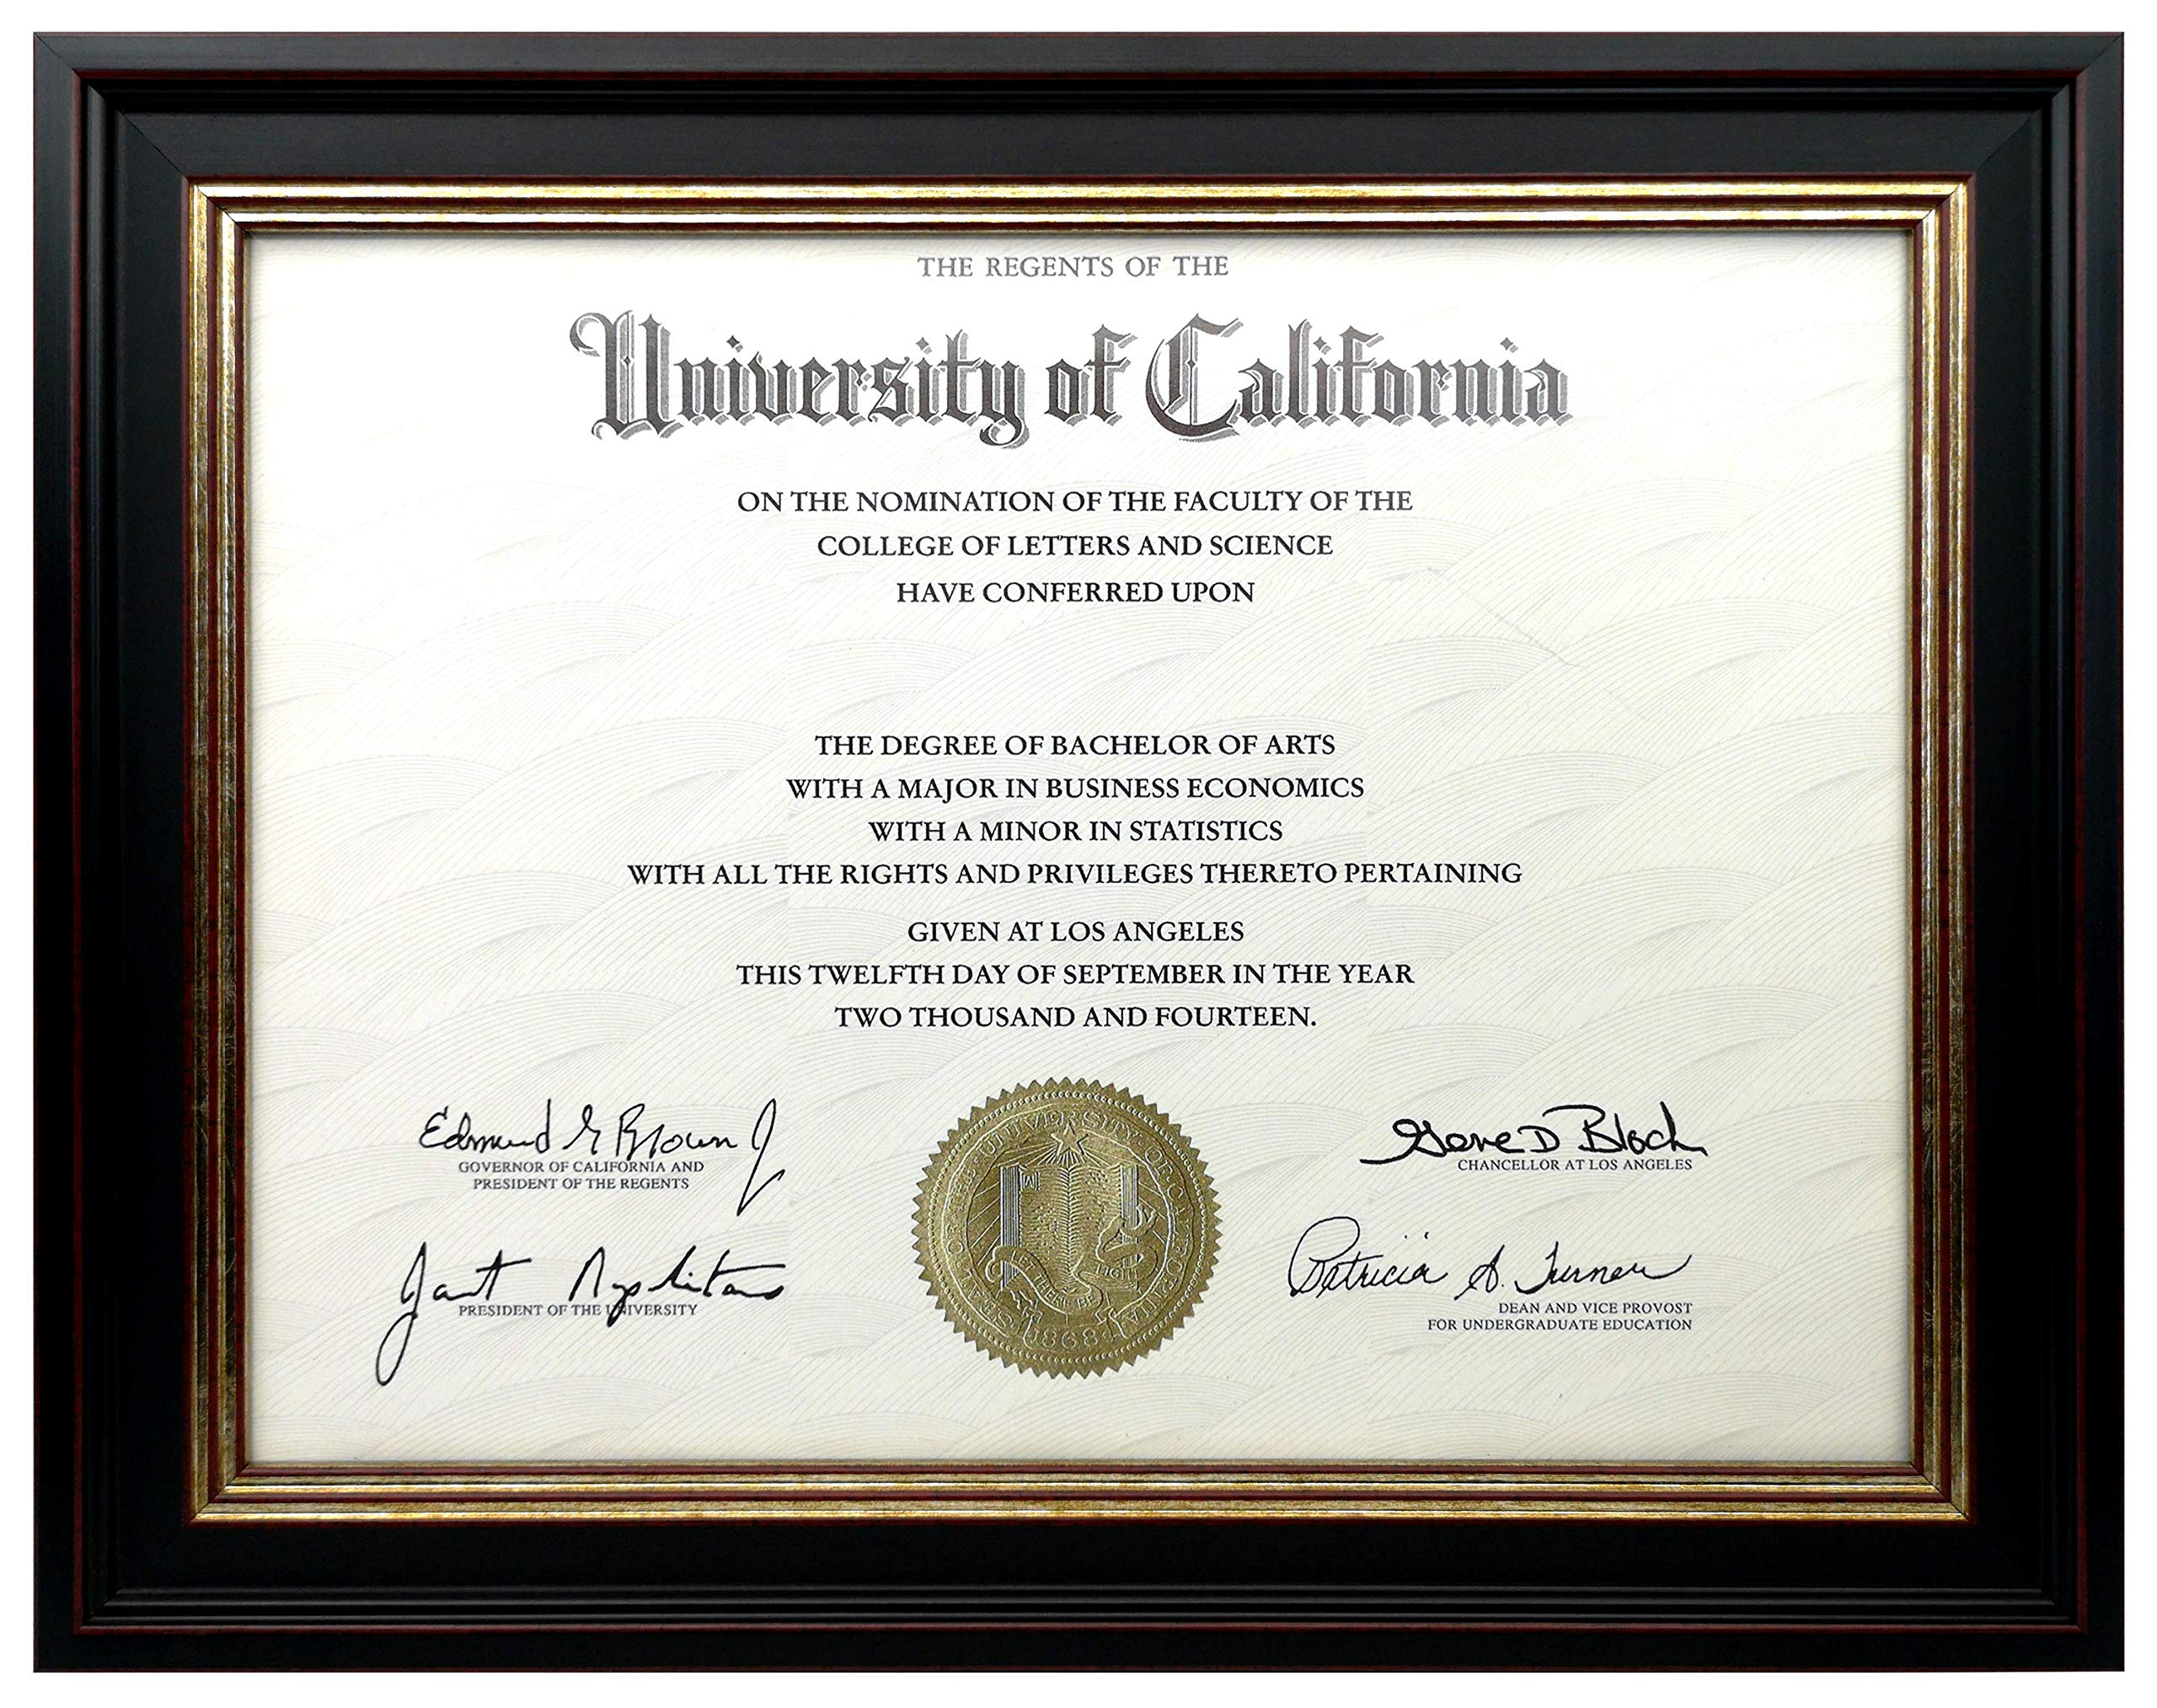 Onuri Inc - Luxurious Document Frame (2-Pack) - Classic 8.5x11 Picture Frame for Diploma Documents and Certificates by Onuri Inc. (Image #2)